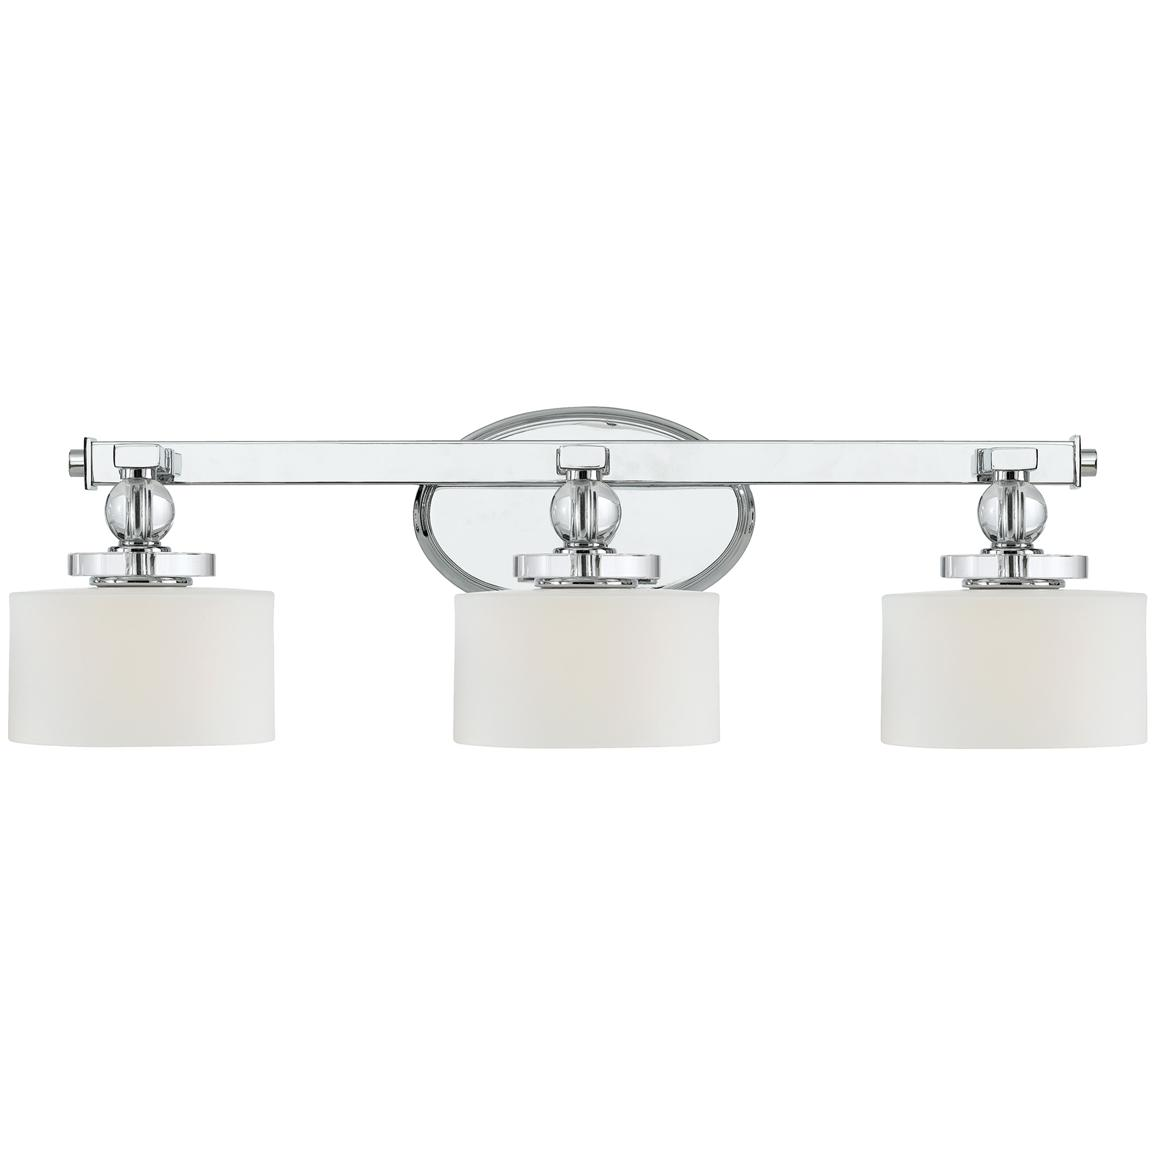 Downtown 3-light Bath Fixture from Quoizel®, Polished Chrome